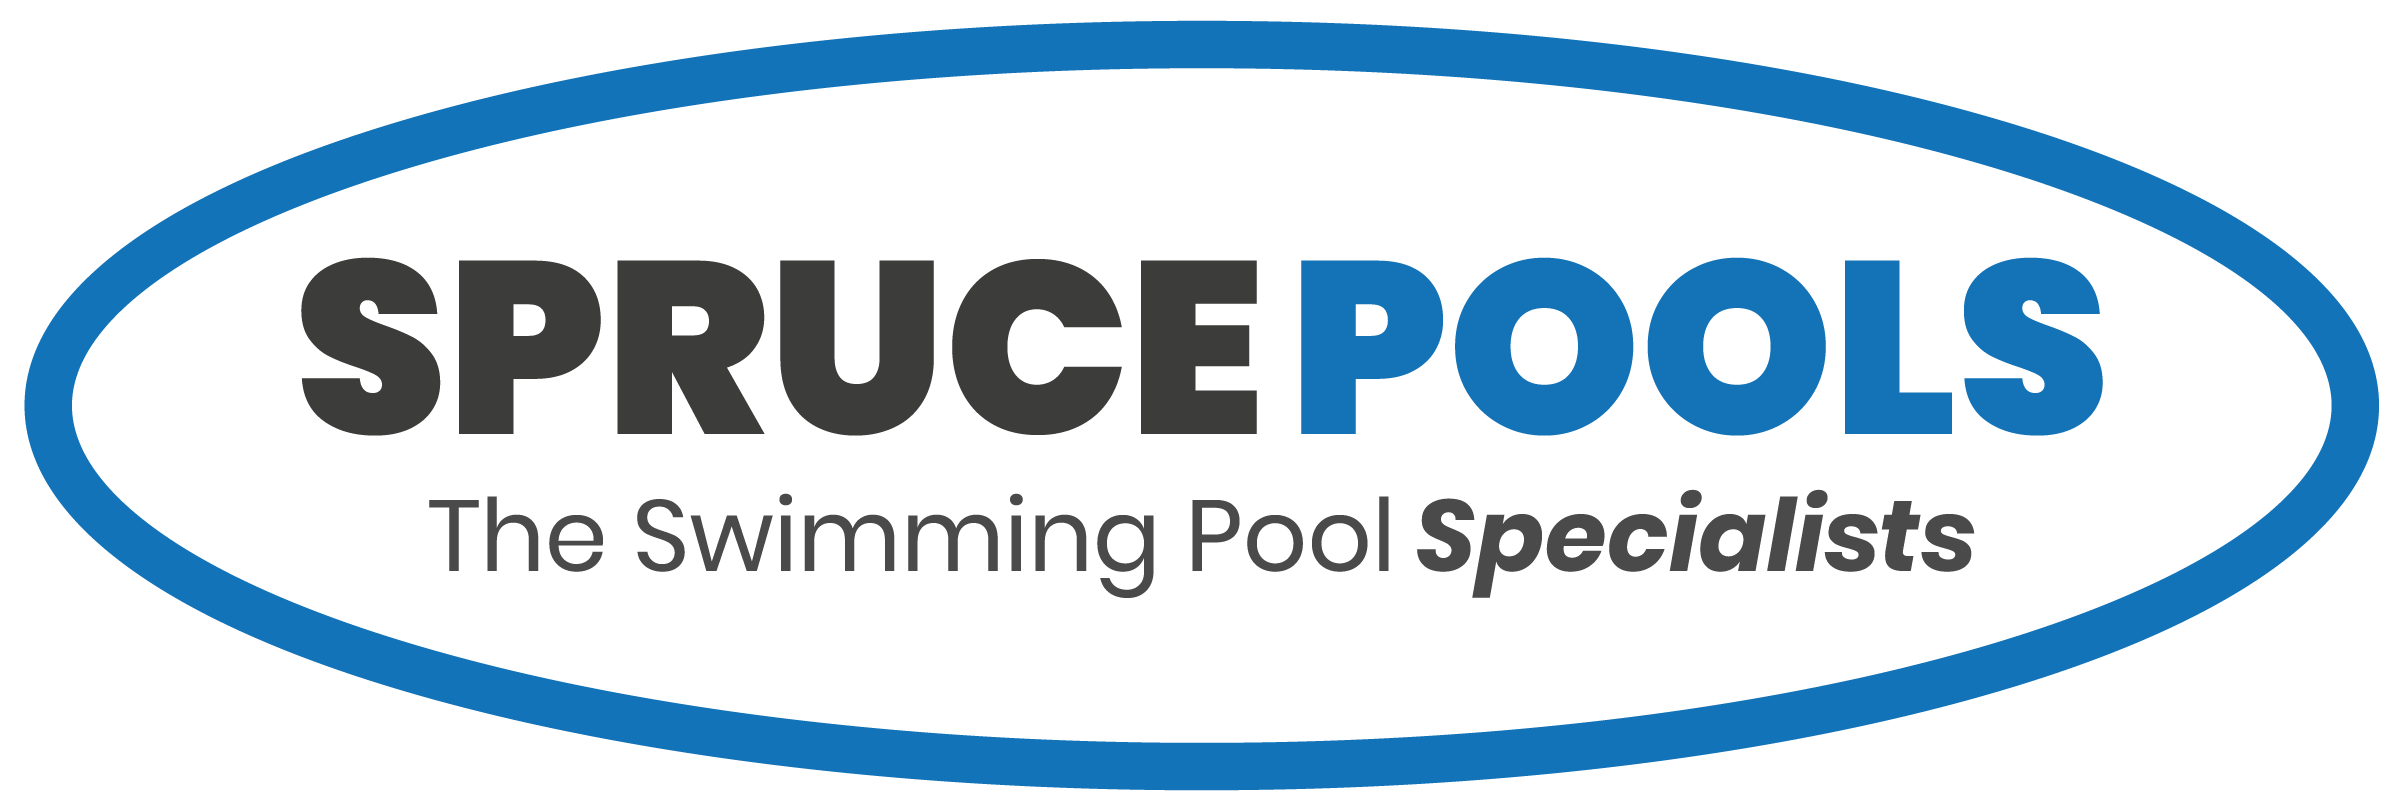 spruce-pools-logo-colour